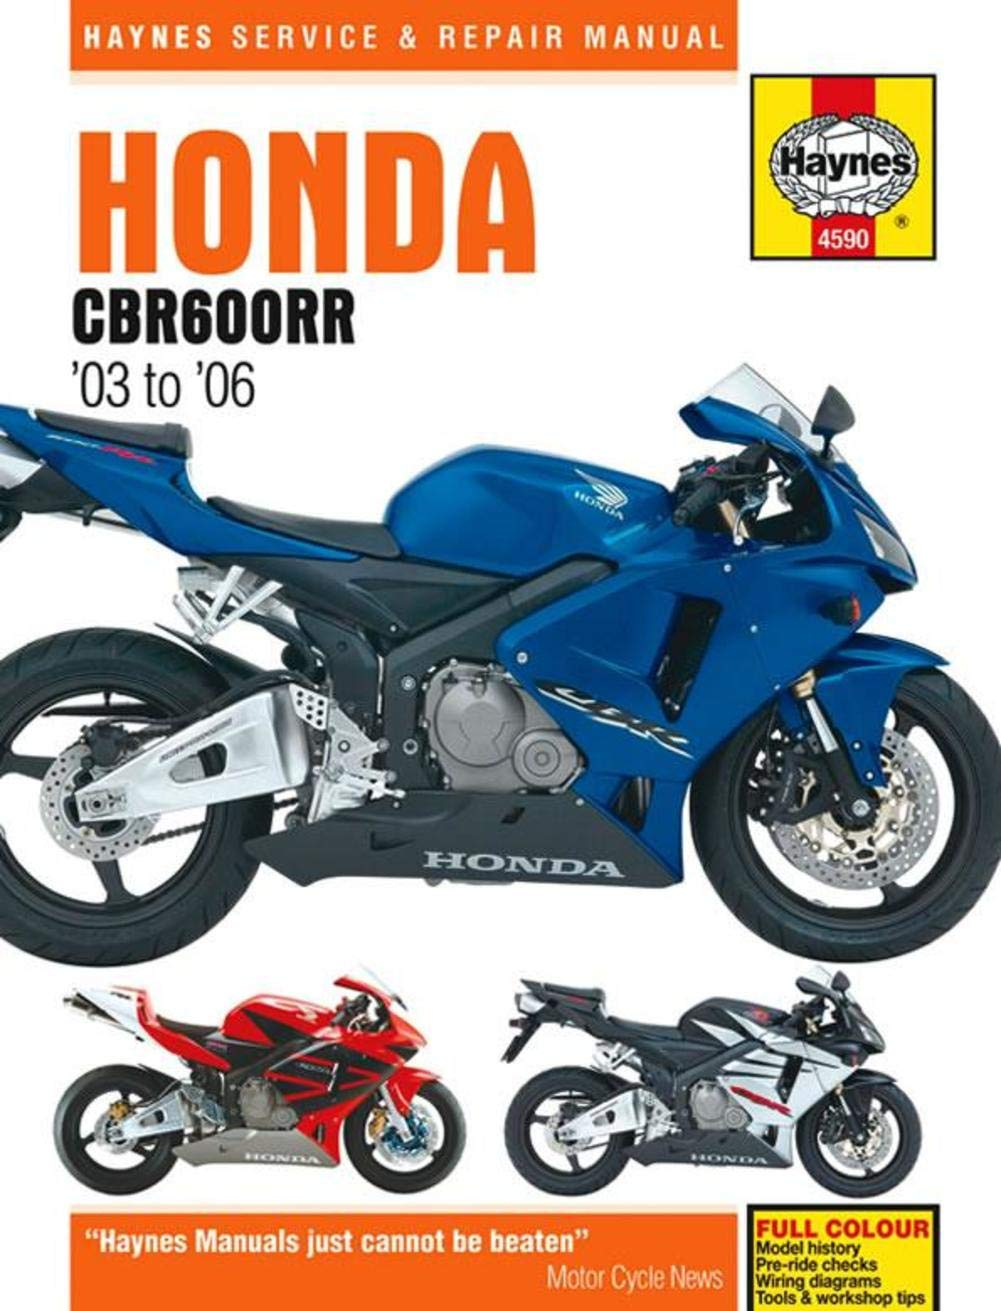 03 06 Honda Cbr600rr Haynes Repair Manual Automotive Cbr F4 1999 Wiring Diagram